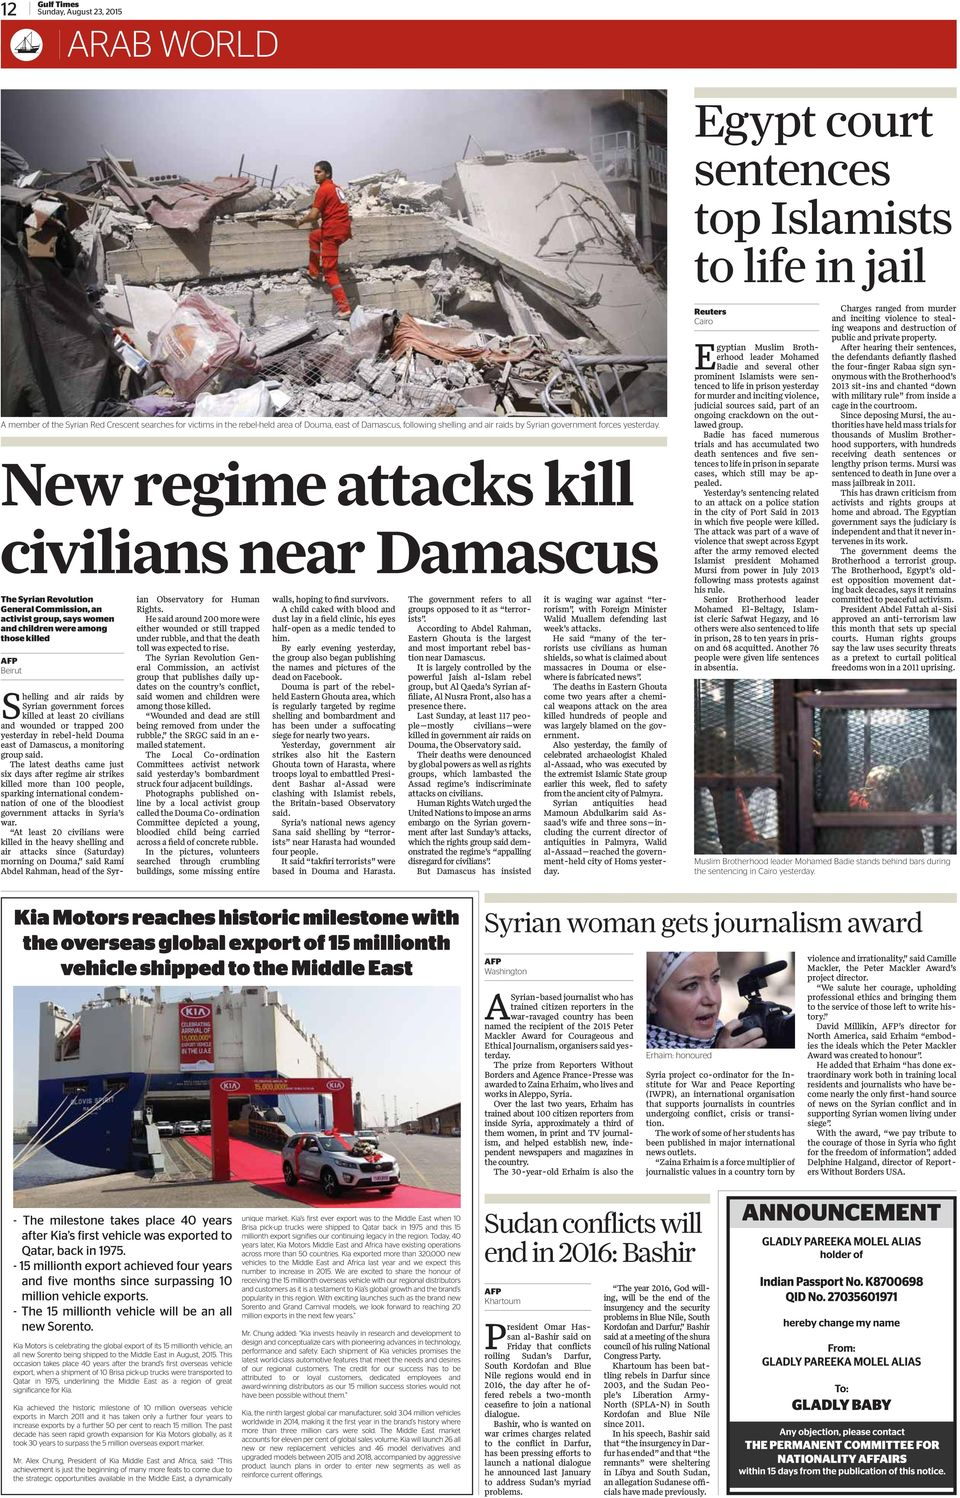 New regime attacks kill civilians near Damascus The Syrian Revolution General Commission, an activist group, says women and children were among those killed Beirut Shelling and air raids by Syrian